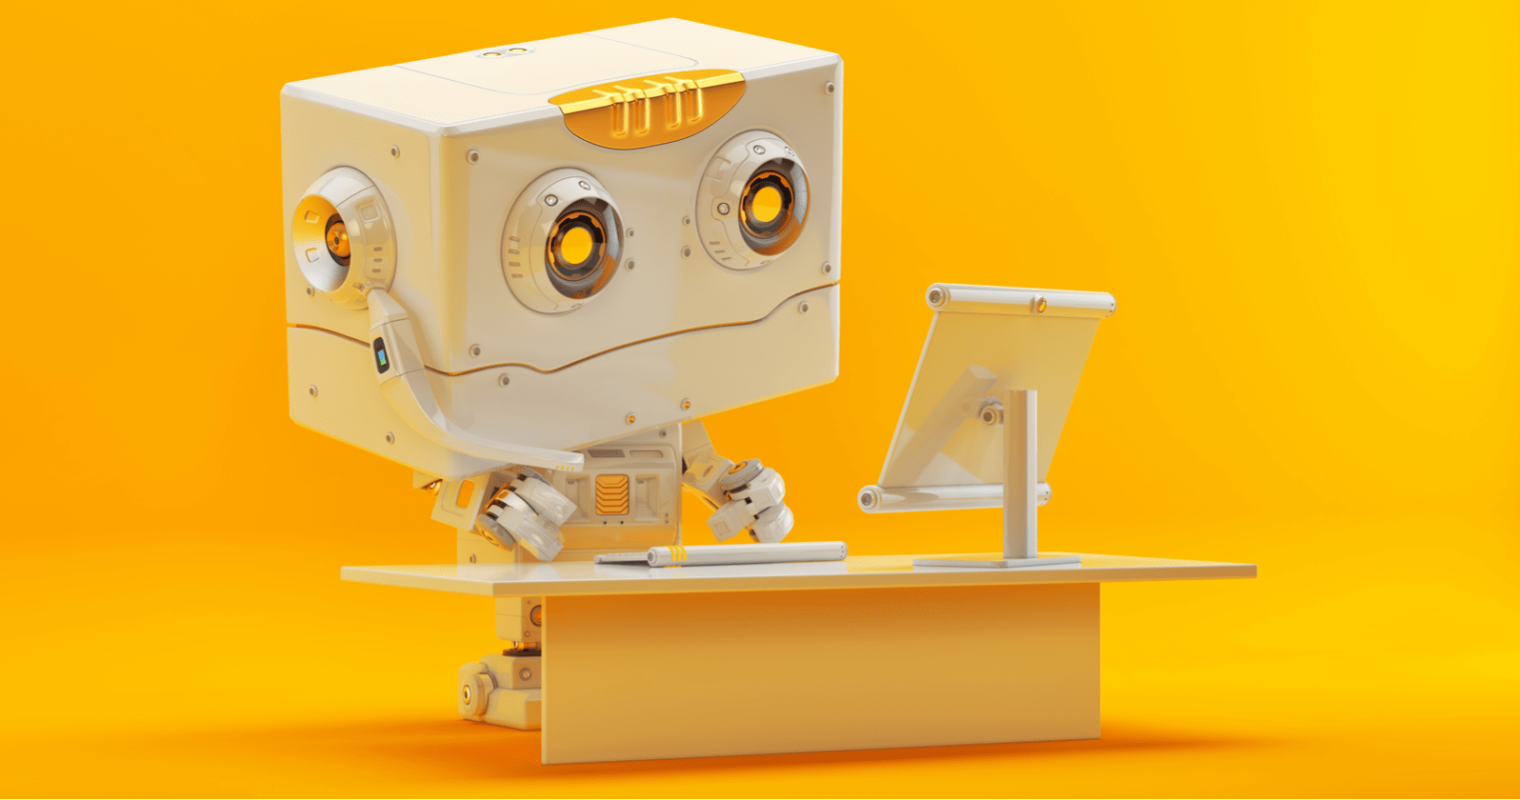 The Future of SEO & Content: Can AI Replace Human Writers?